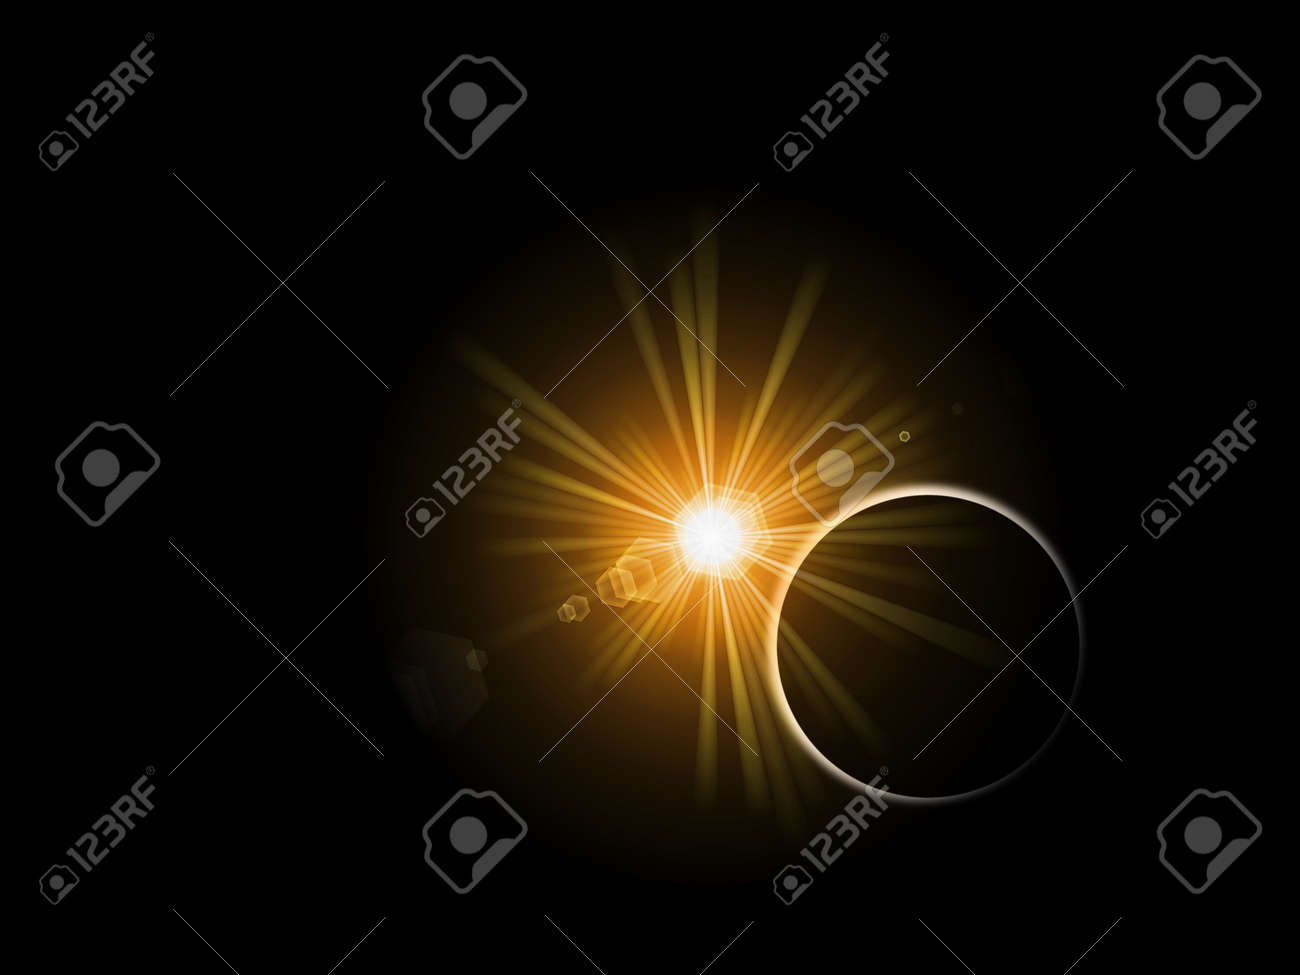 Sunrise or sunset behind a planet on black background. Stock Photo - 5241441